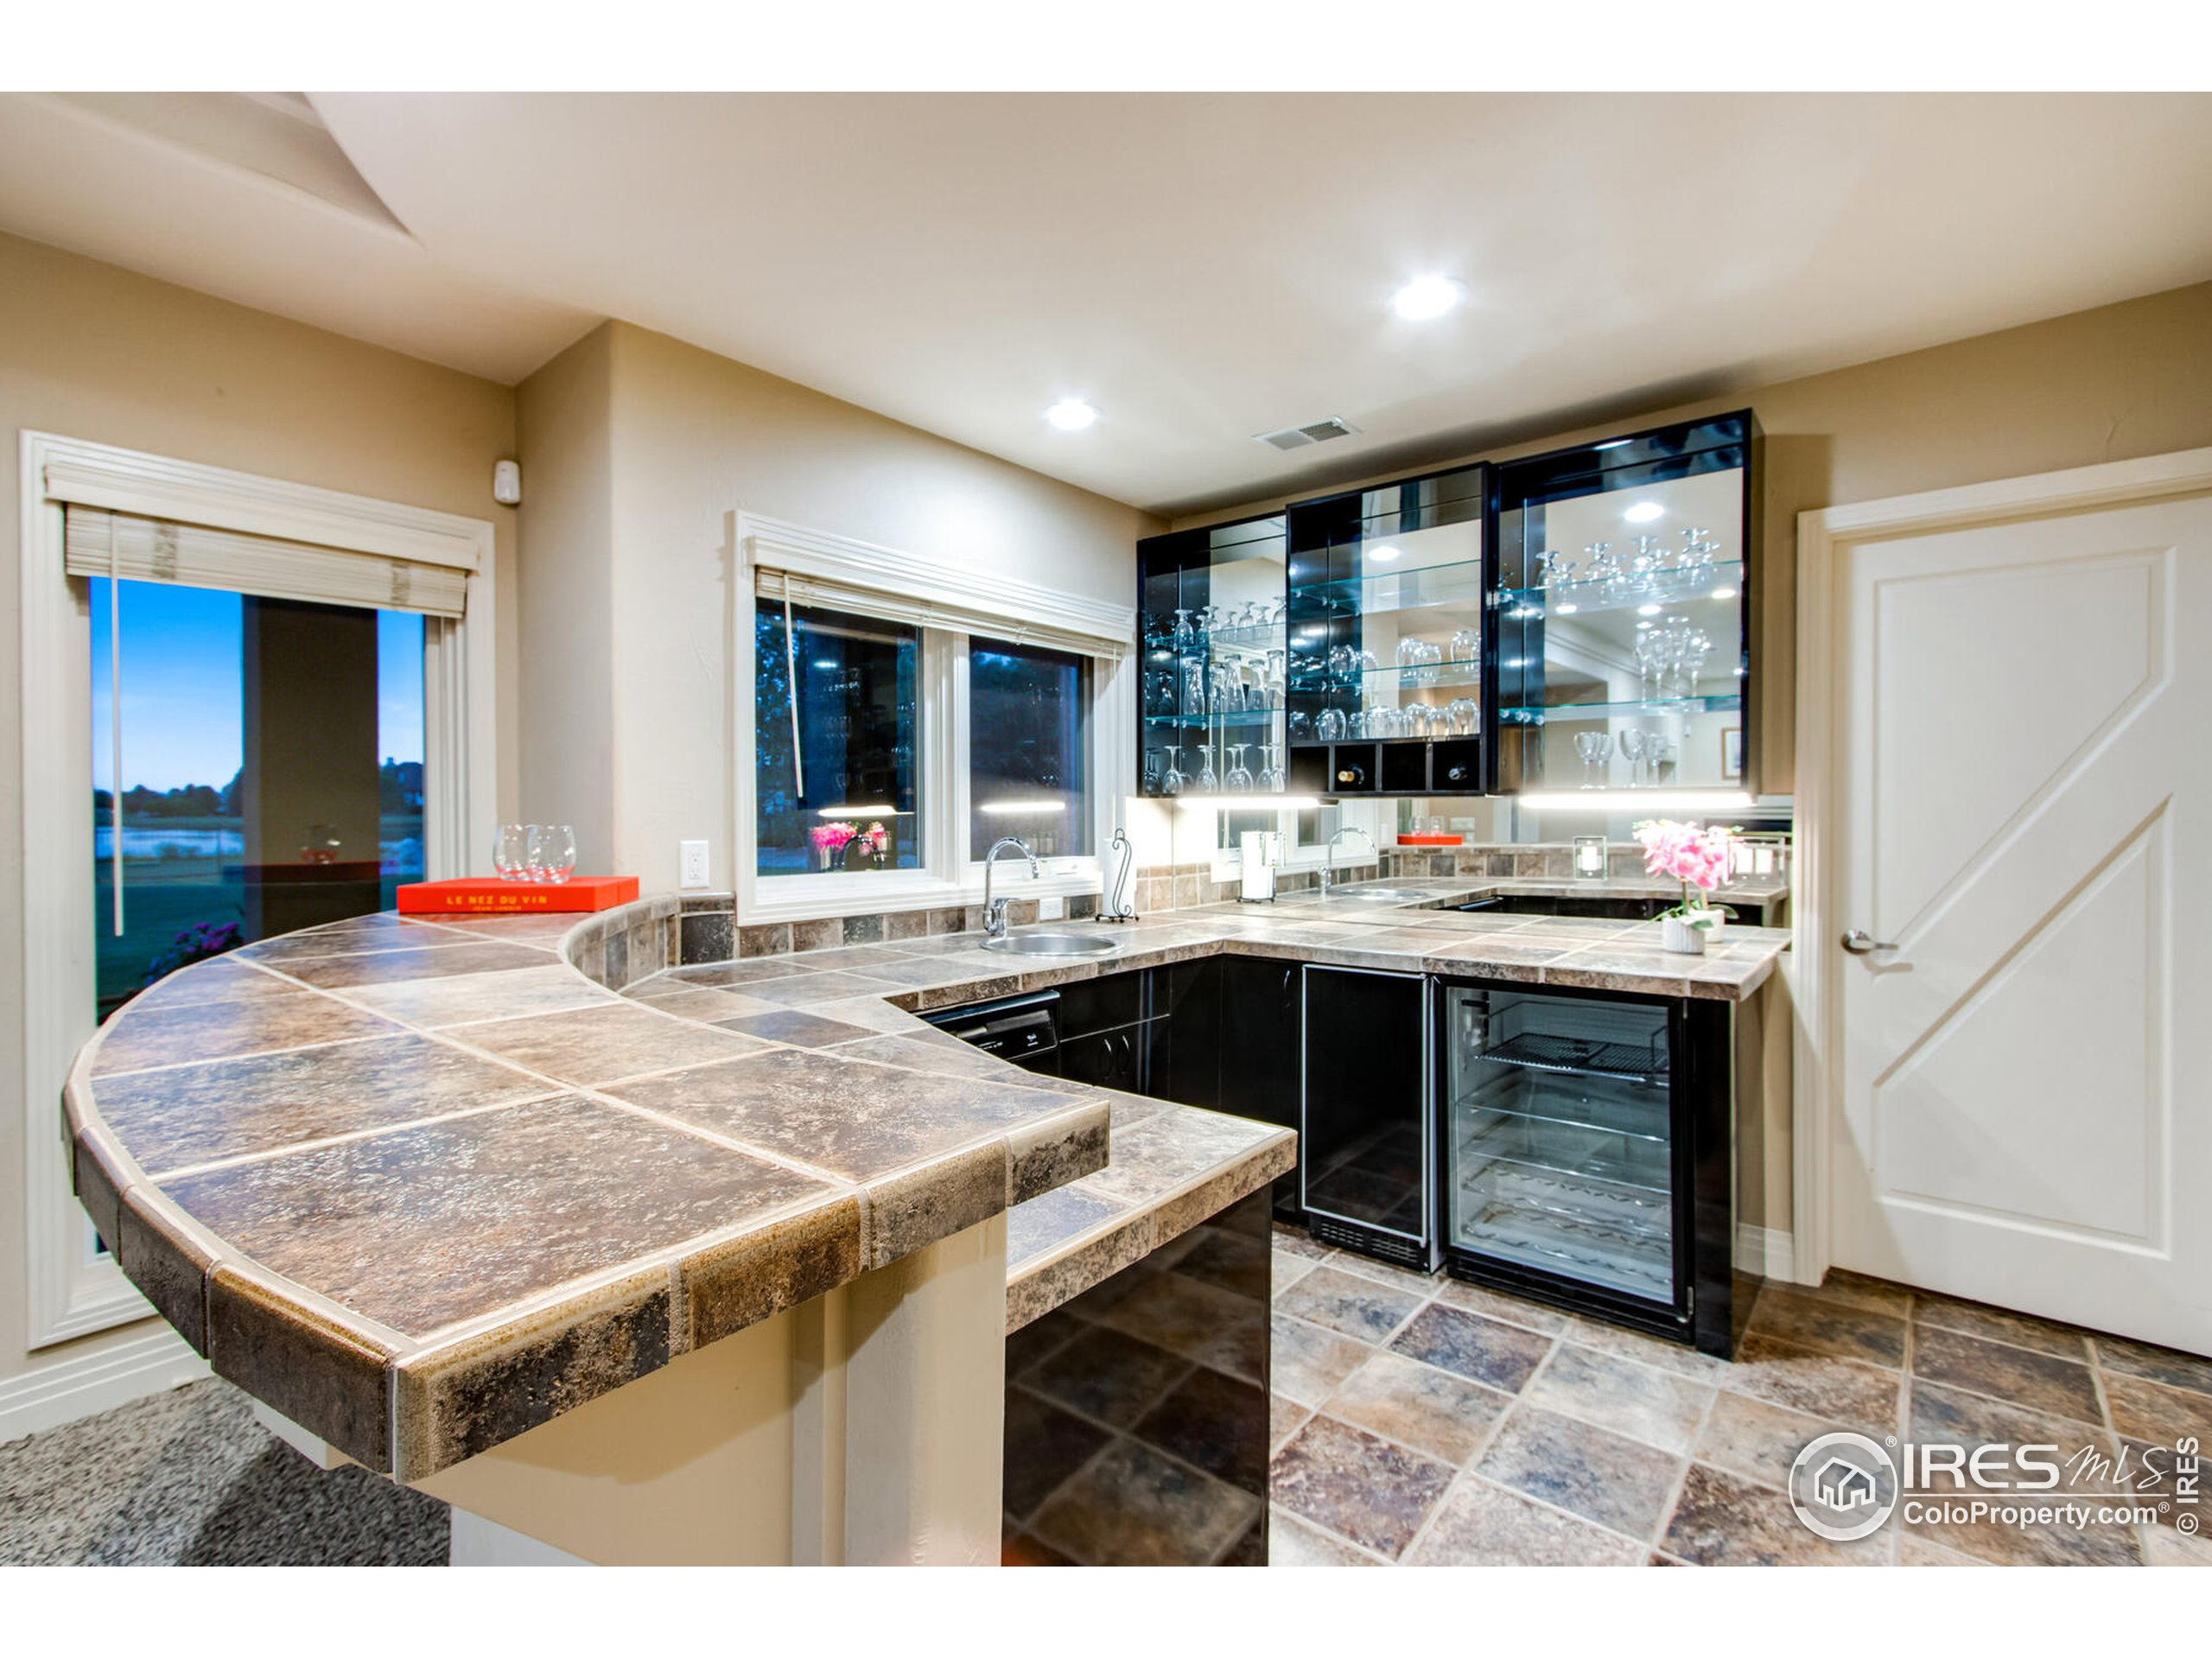 Lower Level Kitchenette with sink, Scotsman Ice Maker, Marvel Beverage Frig, dishwasher & more for hosting large gatherings, or relaxing family movie nights